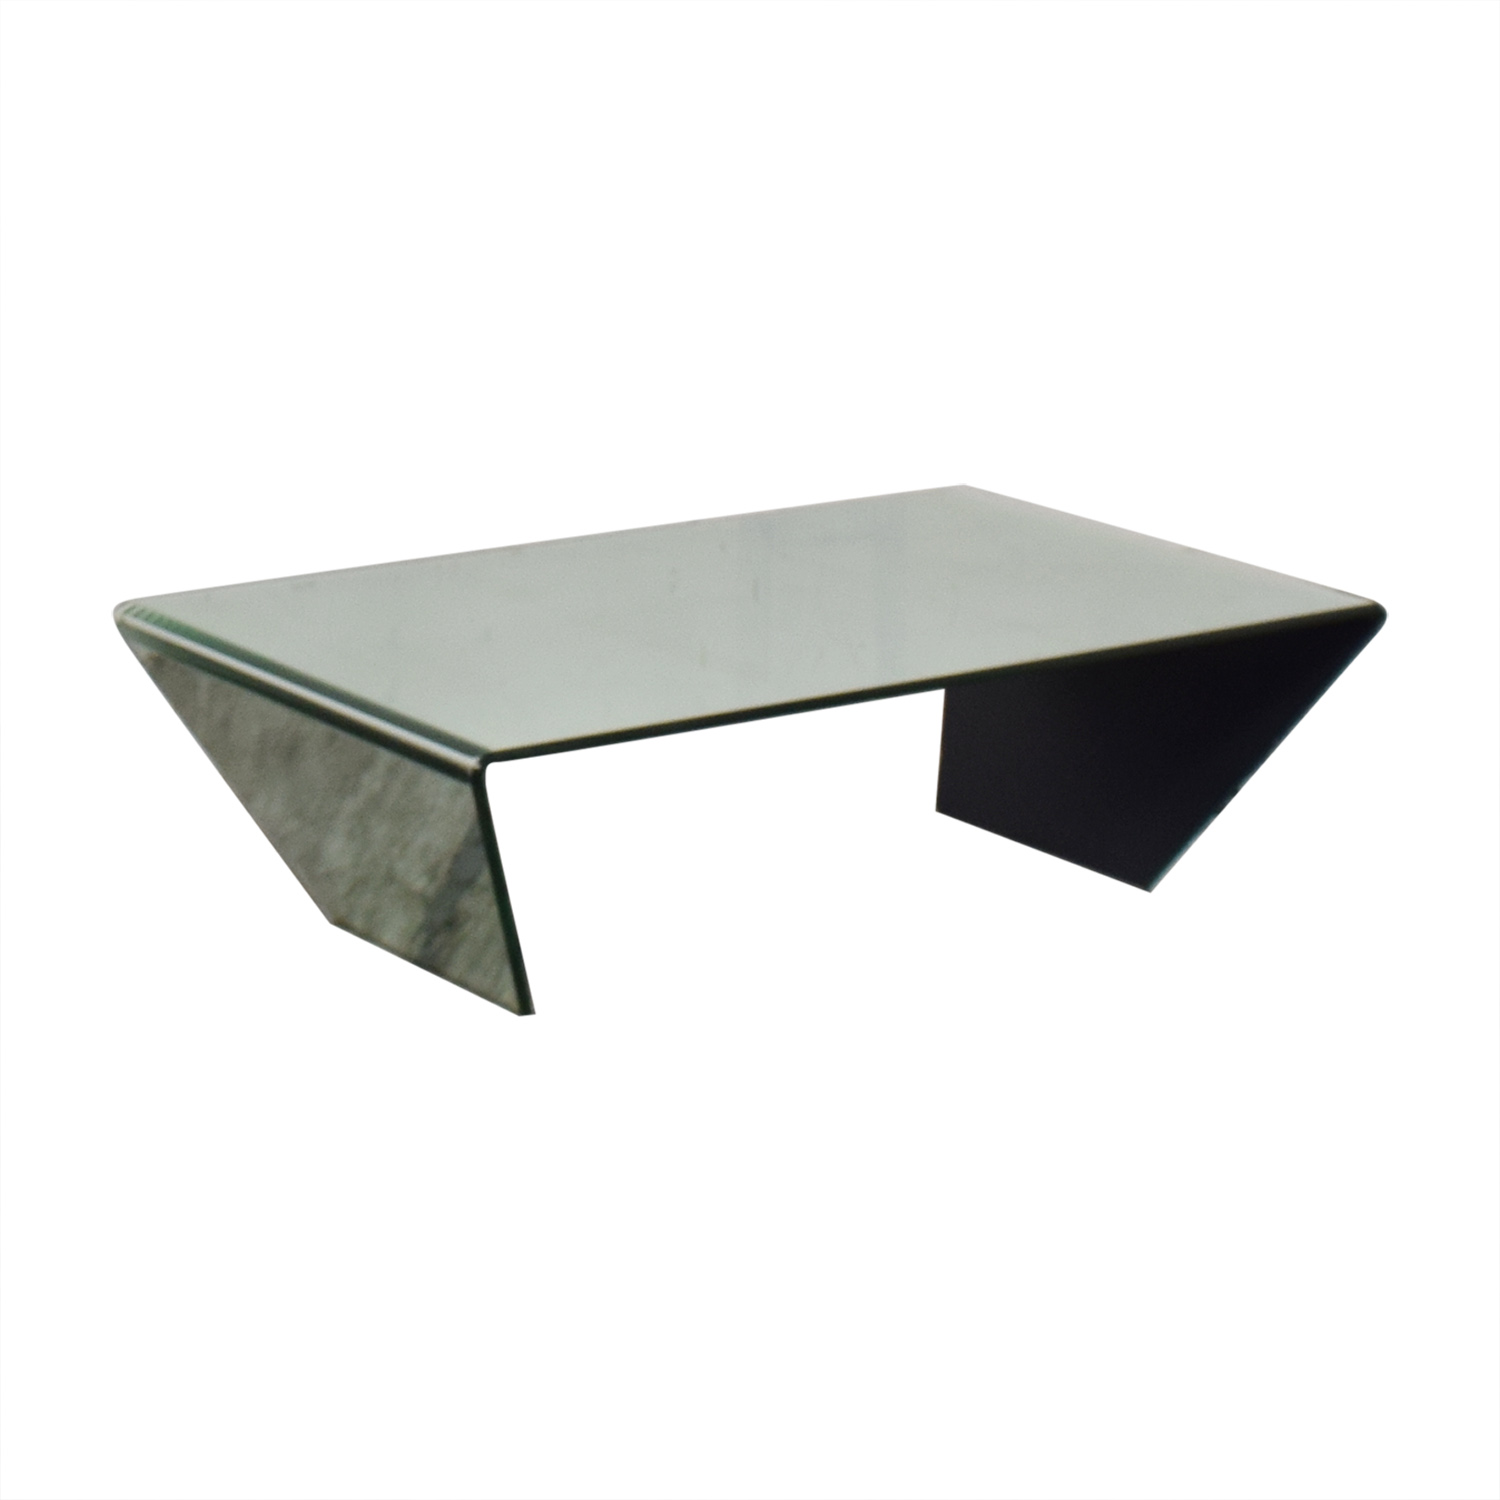 Bent Mirrored Coffee Table used